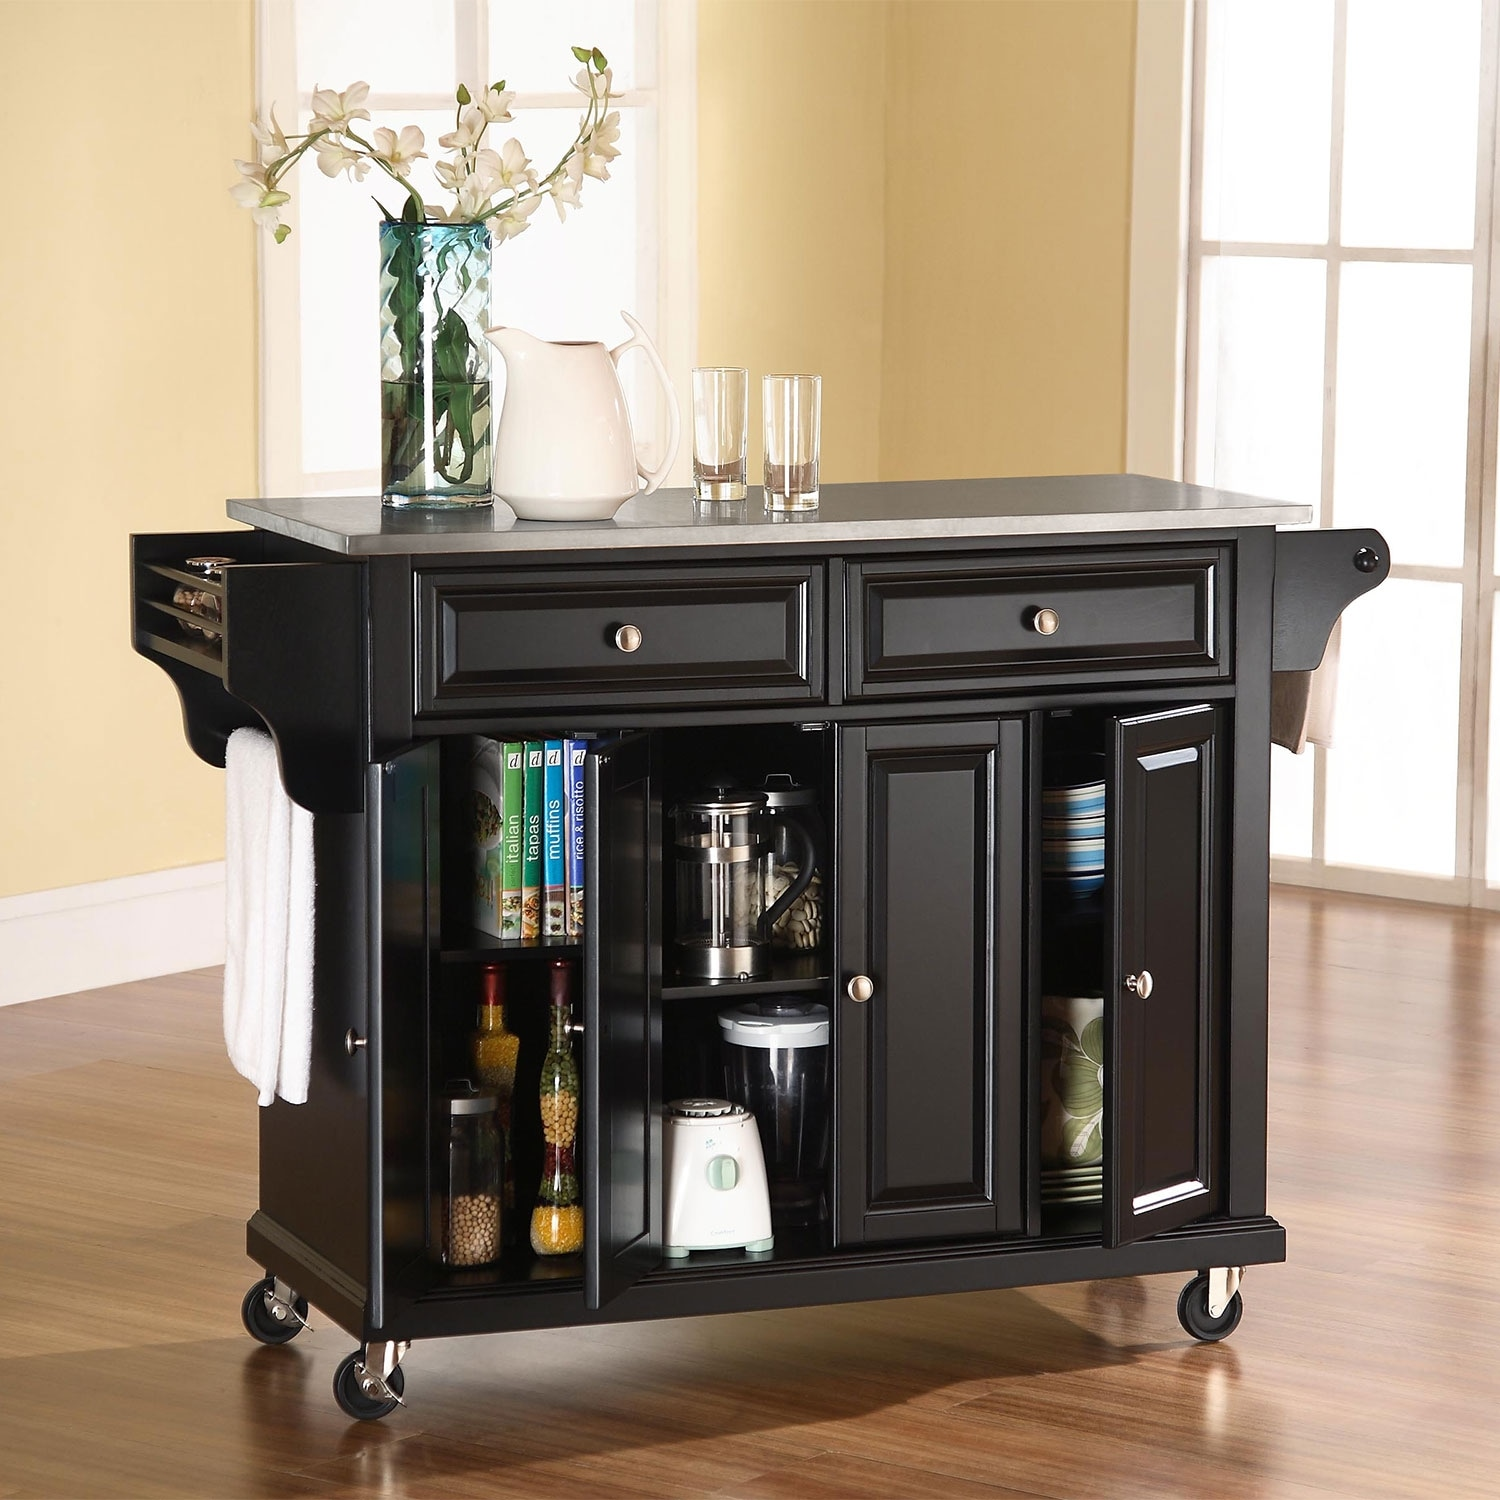 Albany Kitchen Cart - Black | Value City Furniture and Mattresses